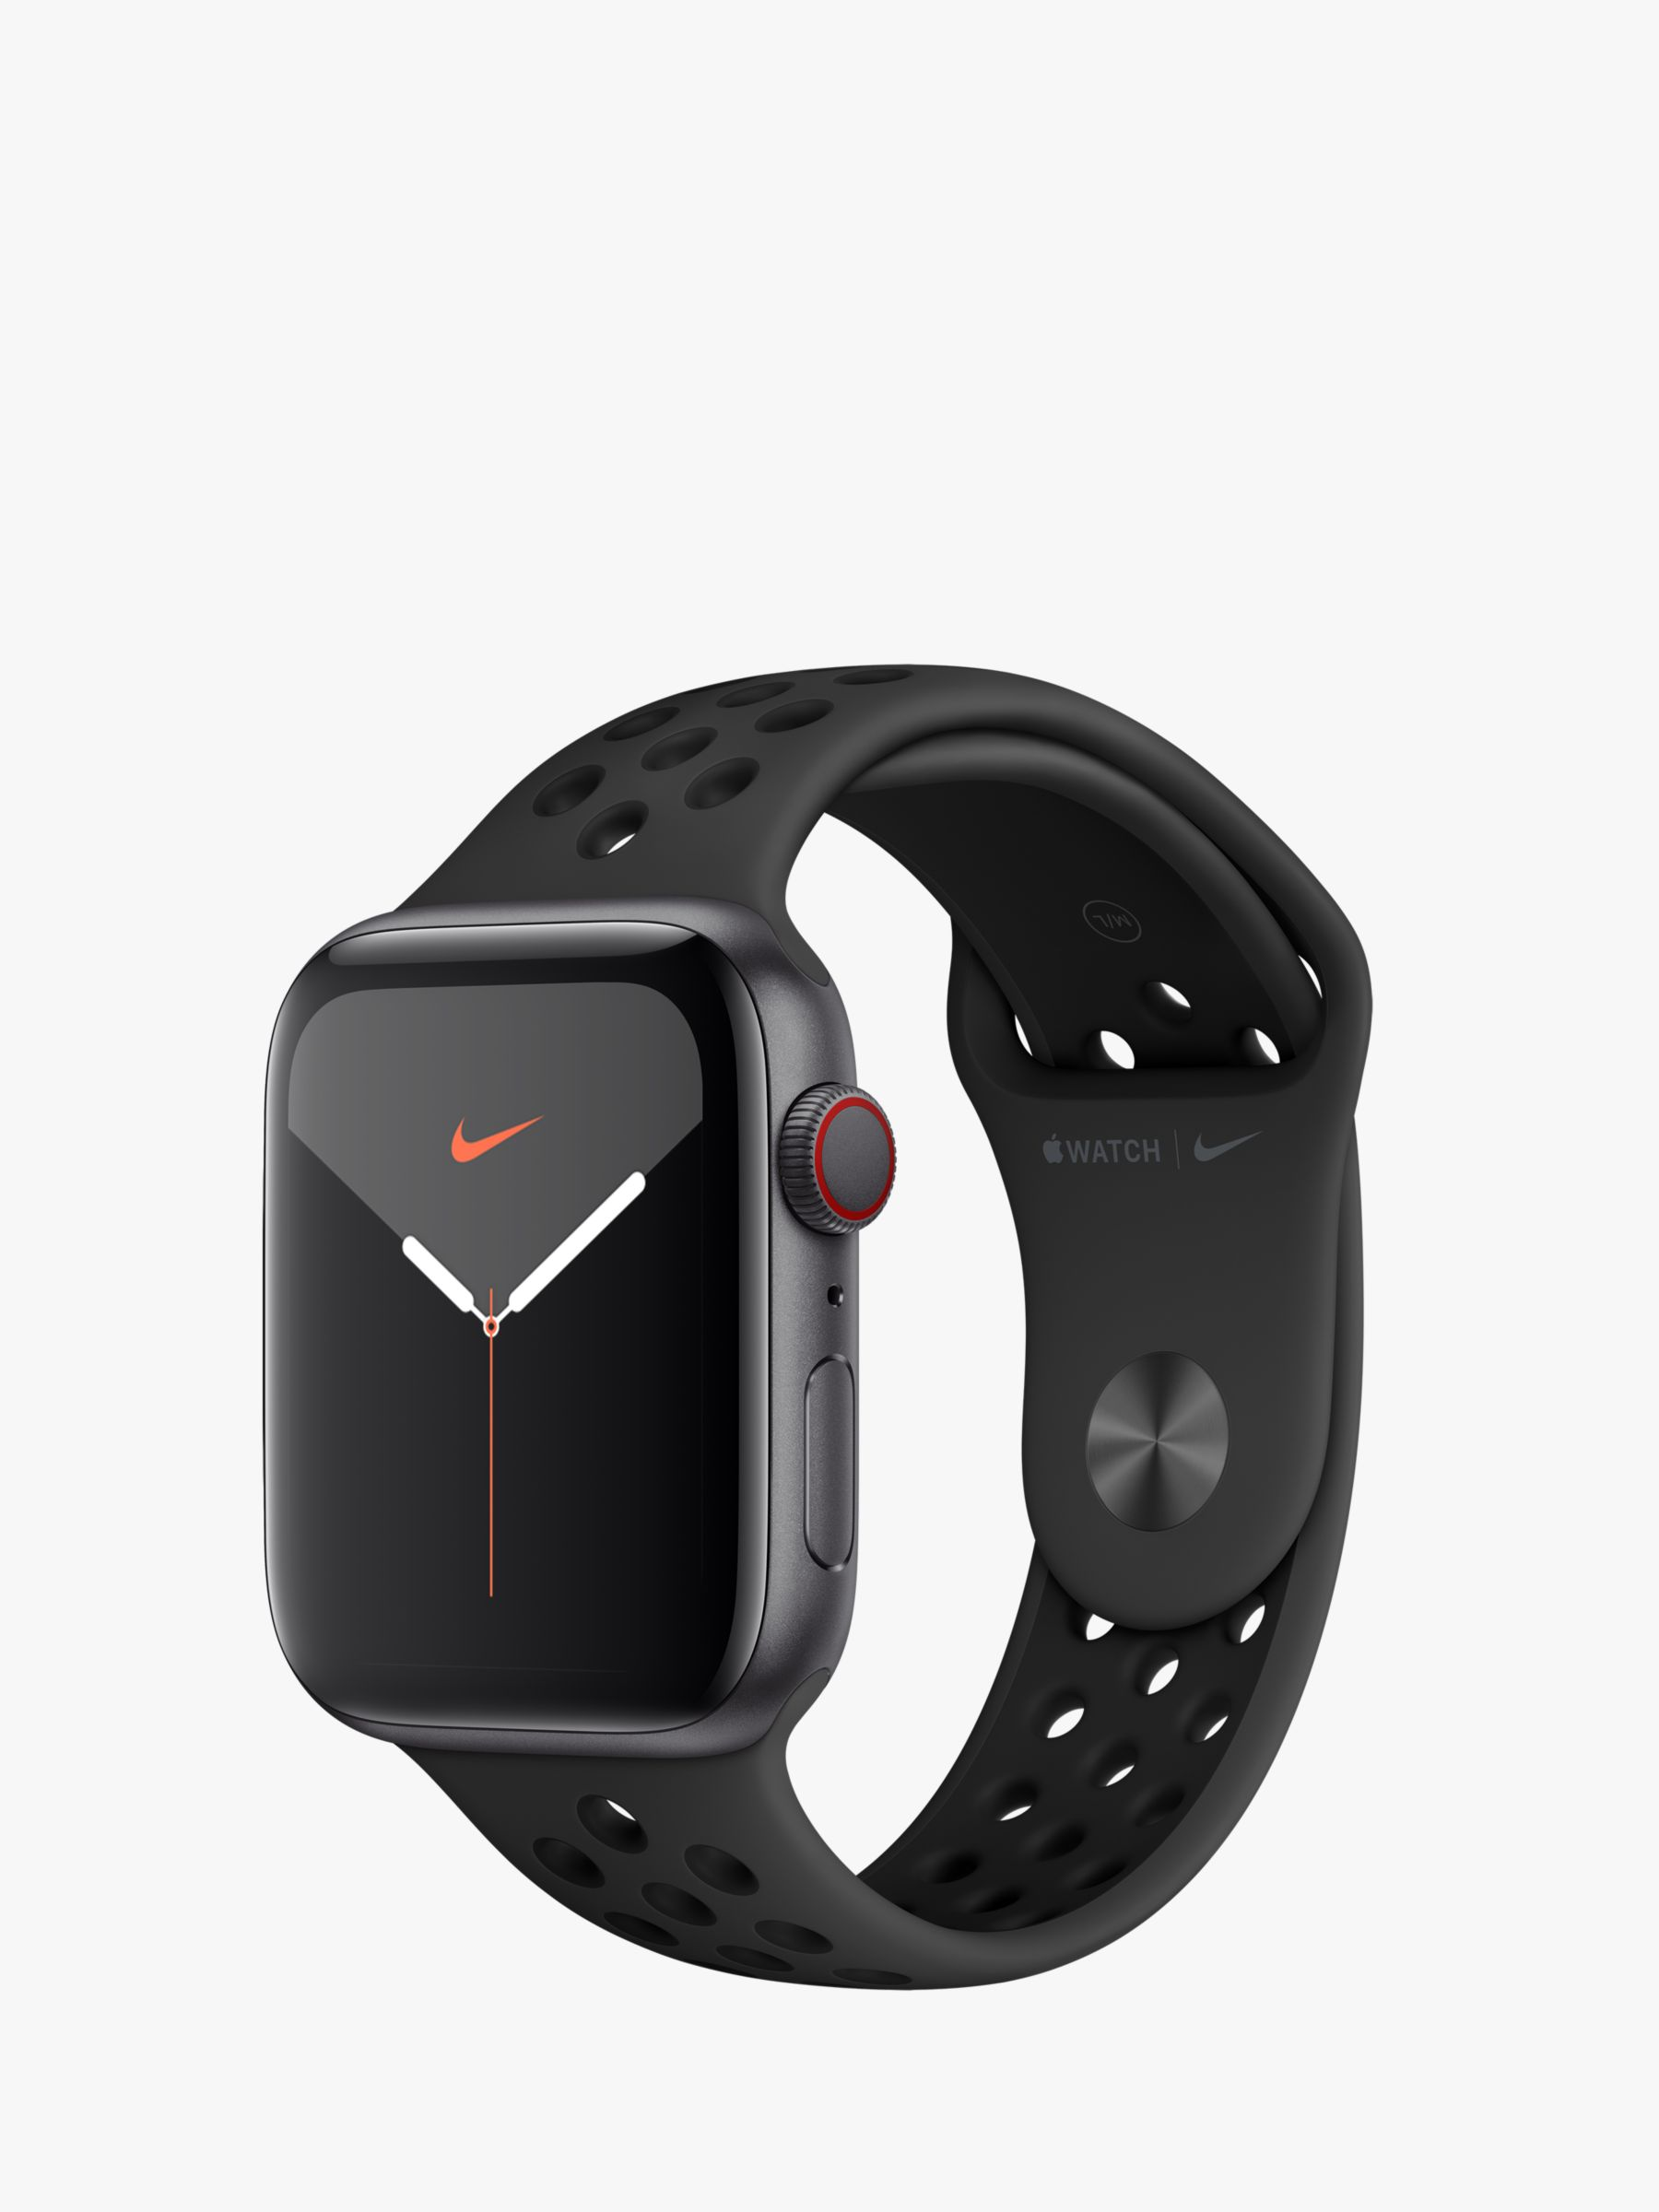 Apple Apple Watch Nike Series 5 GPS + Cellular, 44mm Space Grey Aluminium Case with Anthracite/Black Nike Sport Band - S/M & M/L